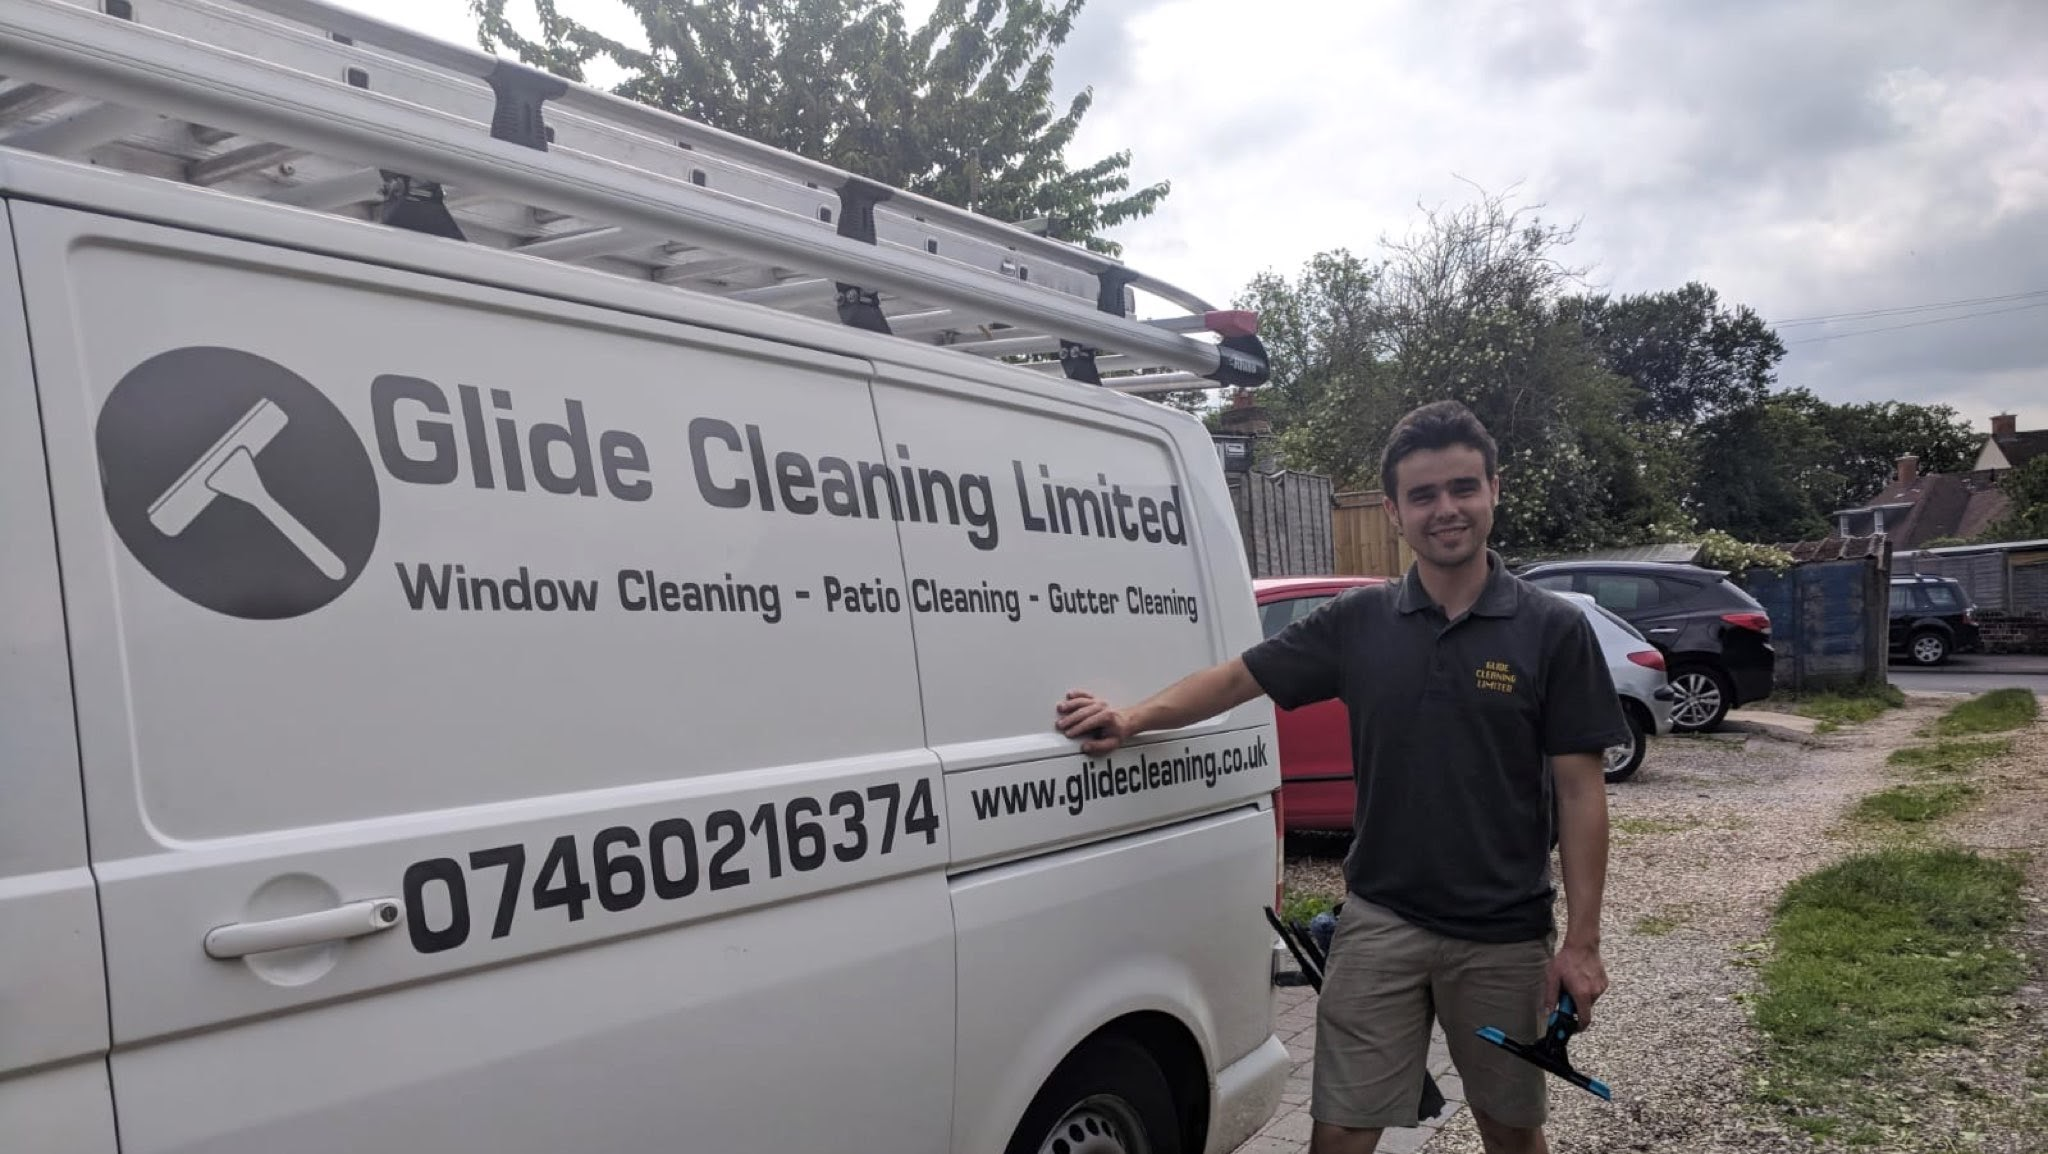 Glide Cleaning Limited